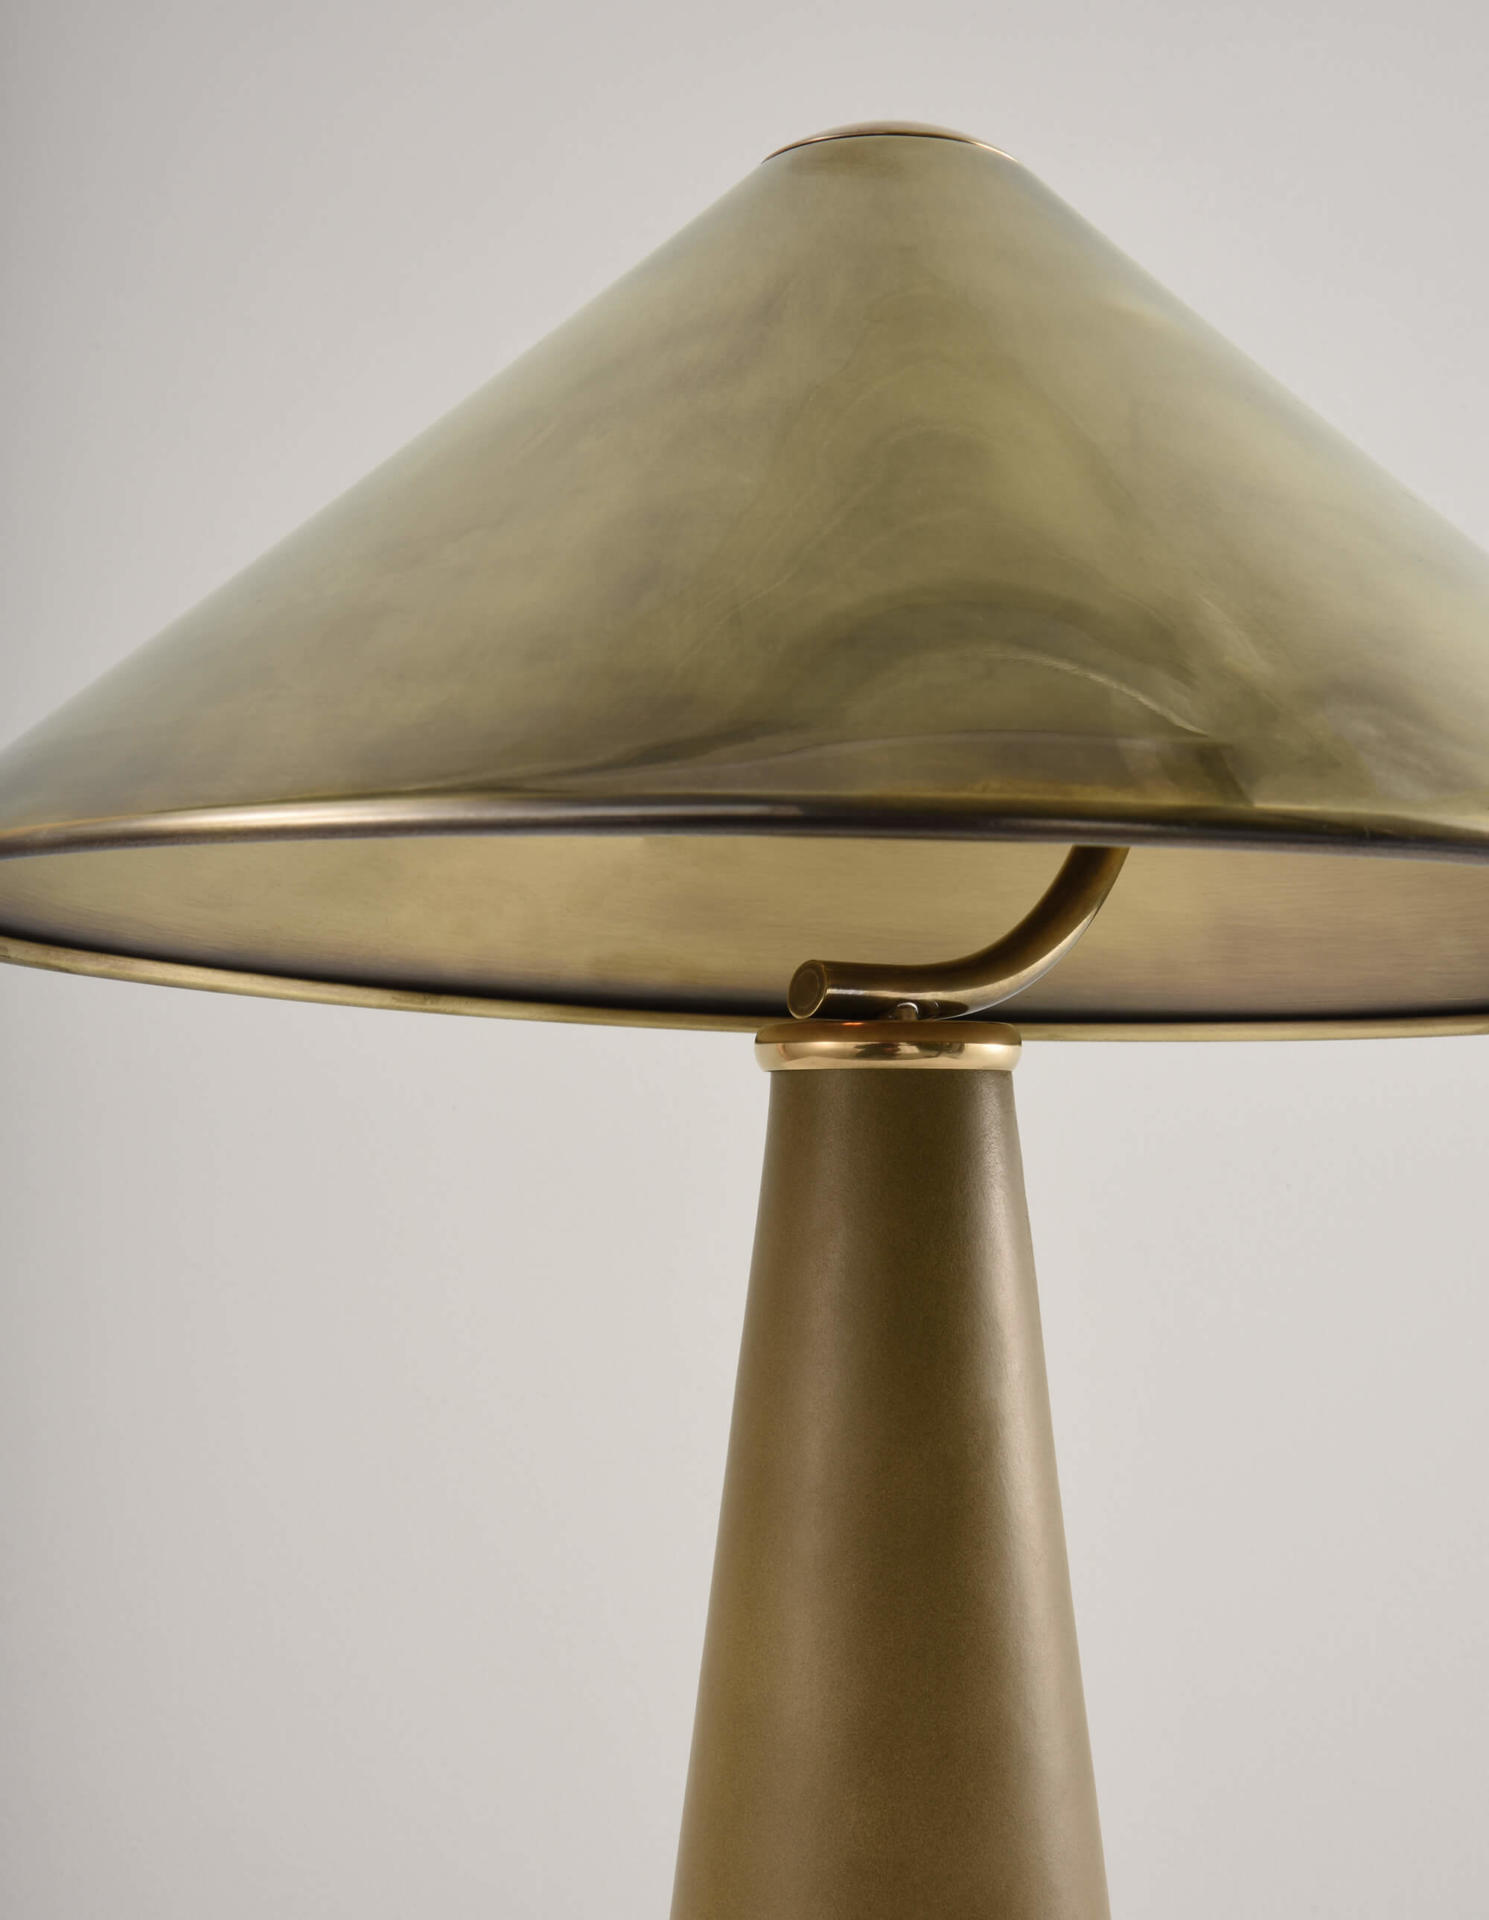 leather wrapped table lamp Shitake by Collier Webb